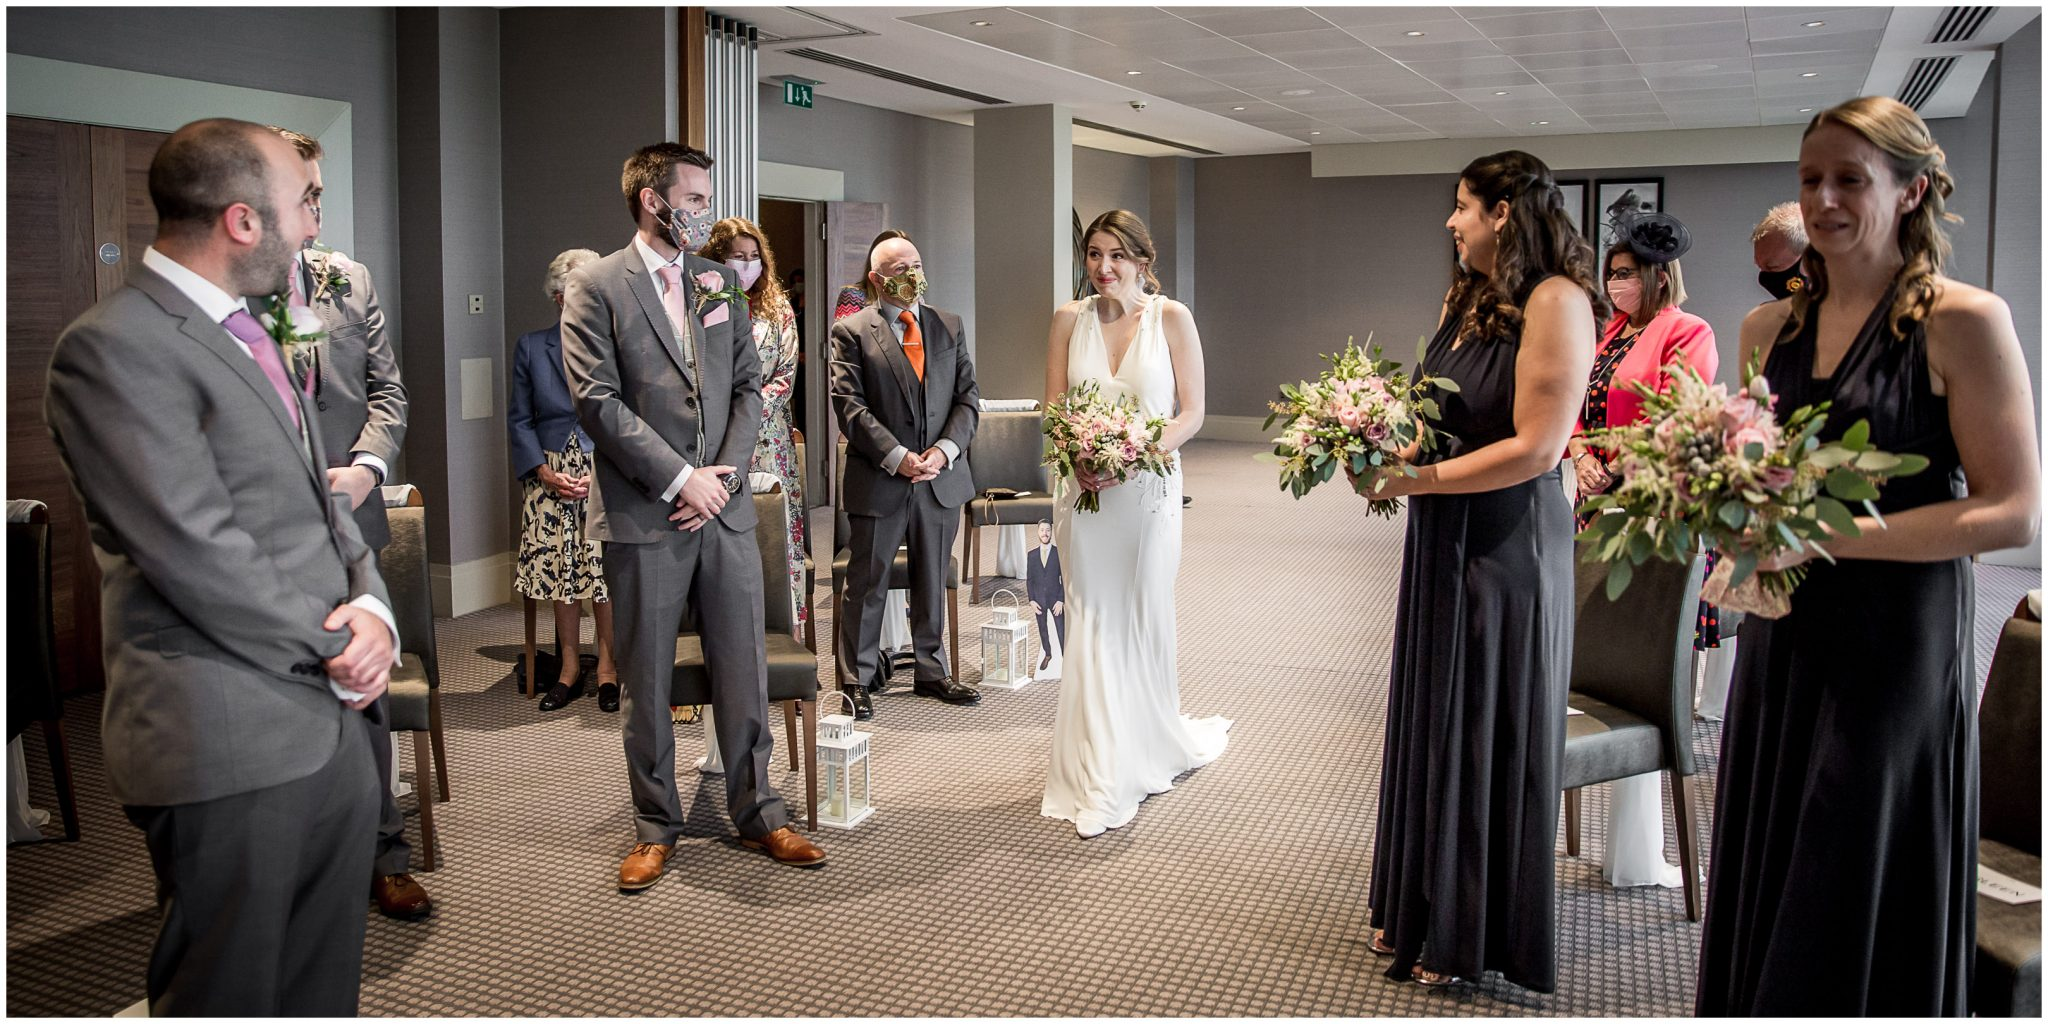 The bride walks down the aisle as wedding guests watch